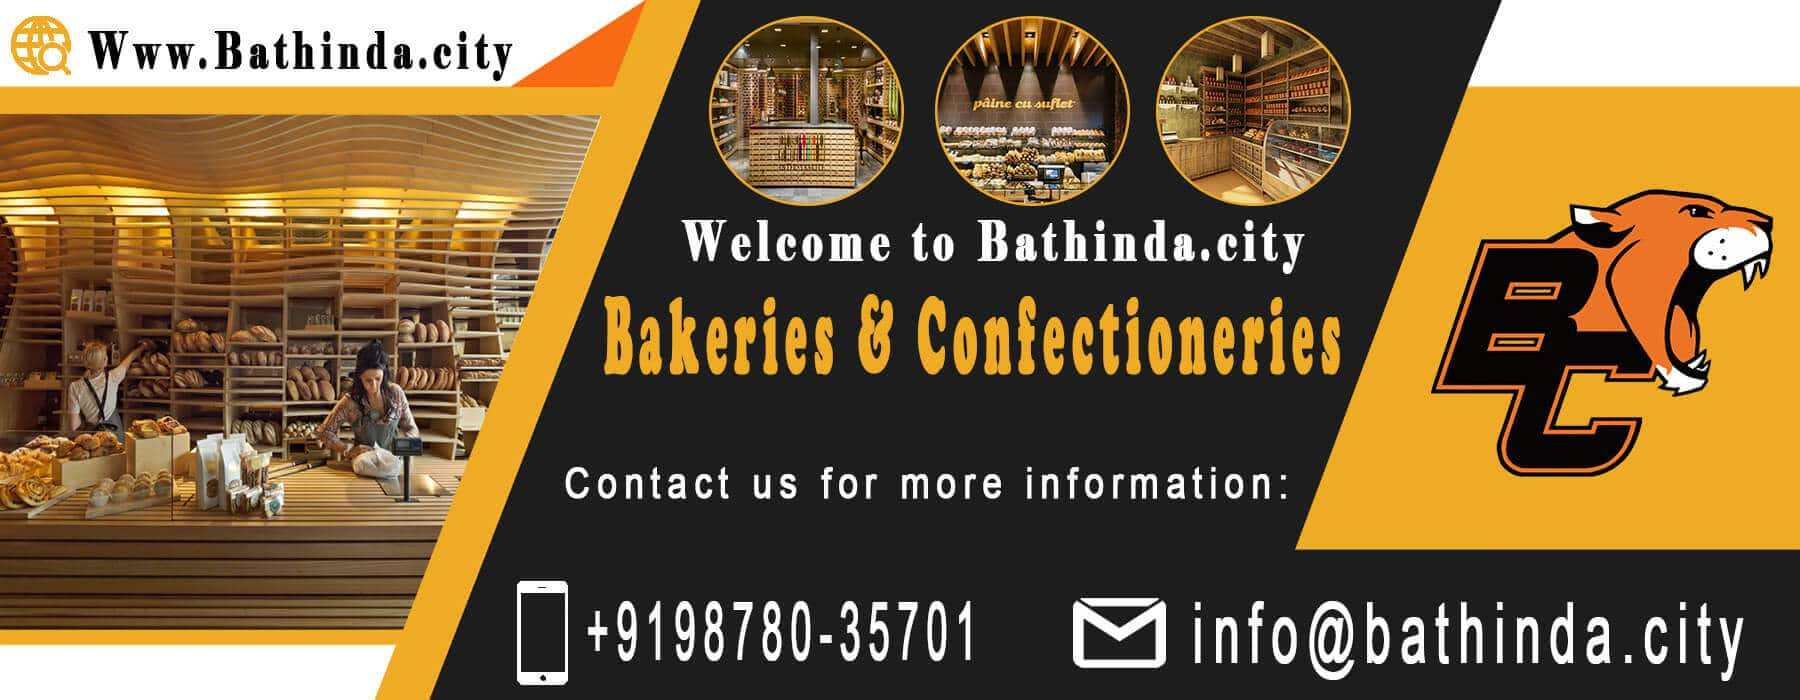 Bakeries and confectioneries in bathinda